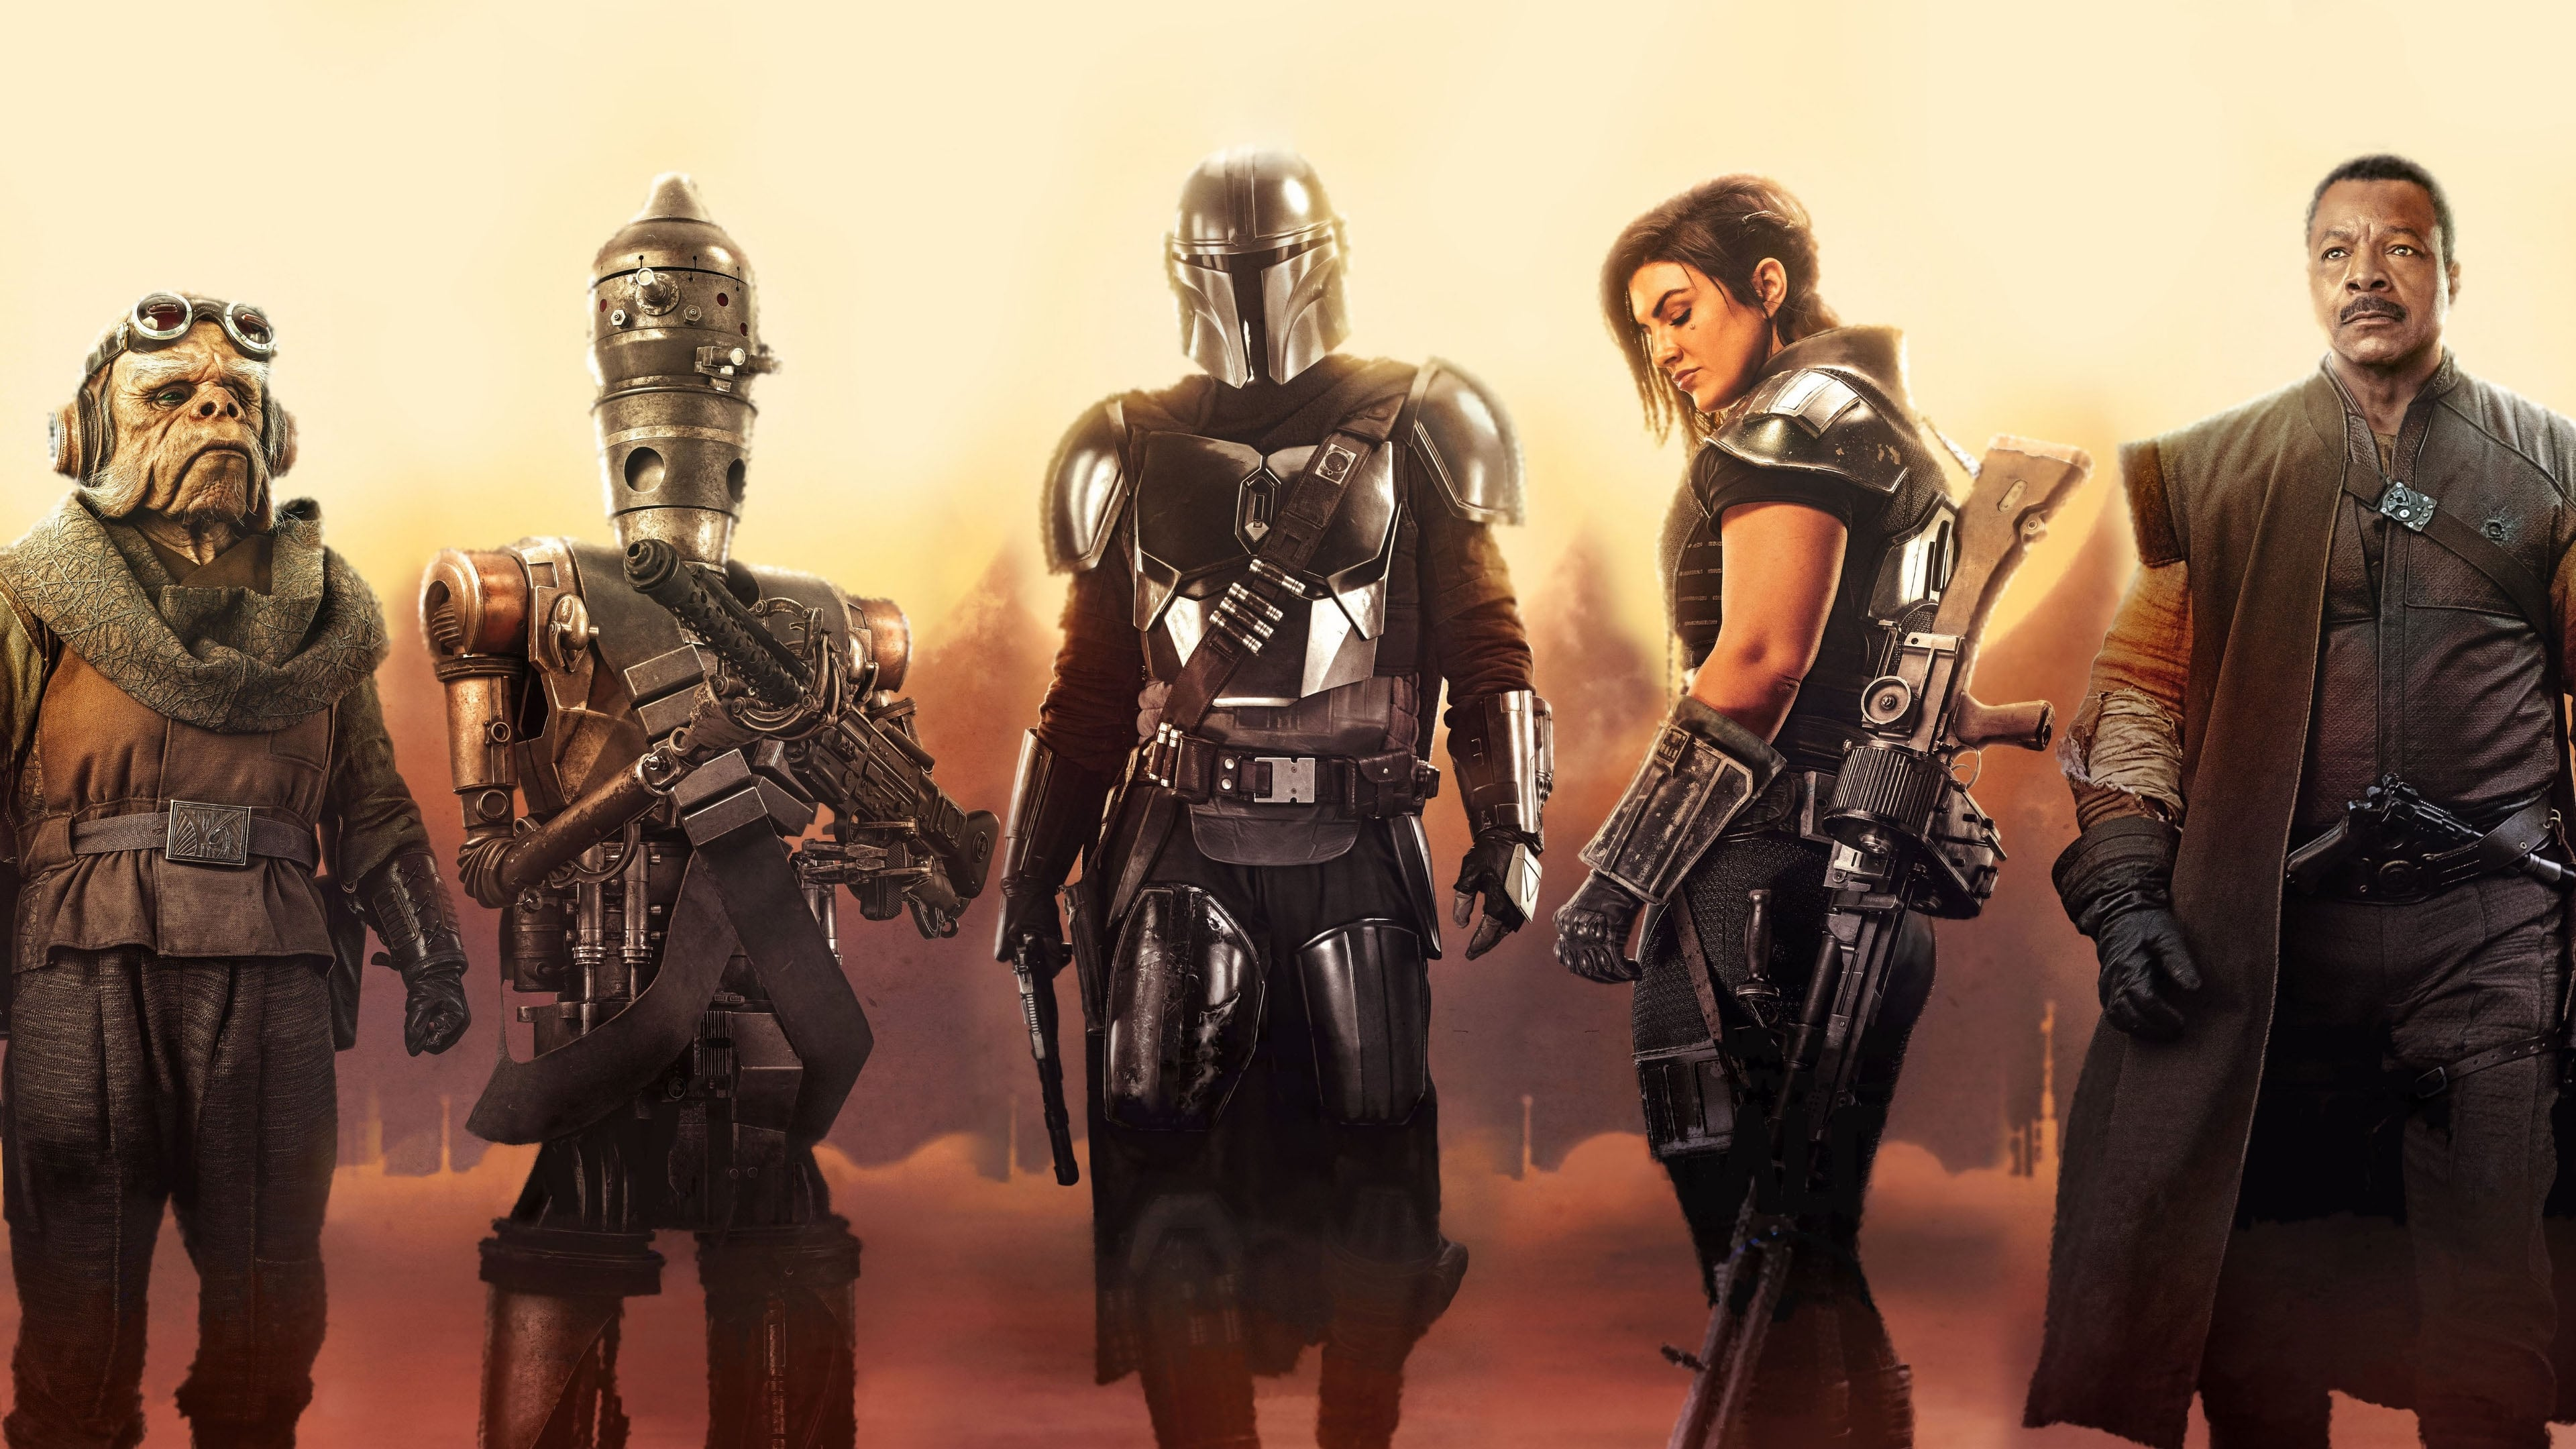 Second season The Mandalorian to release near the end of October